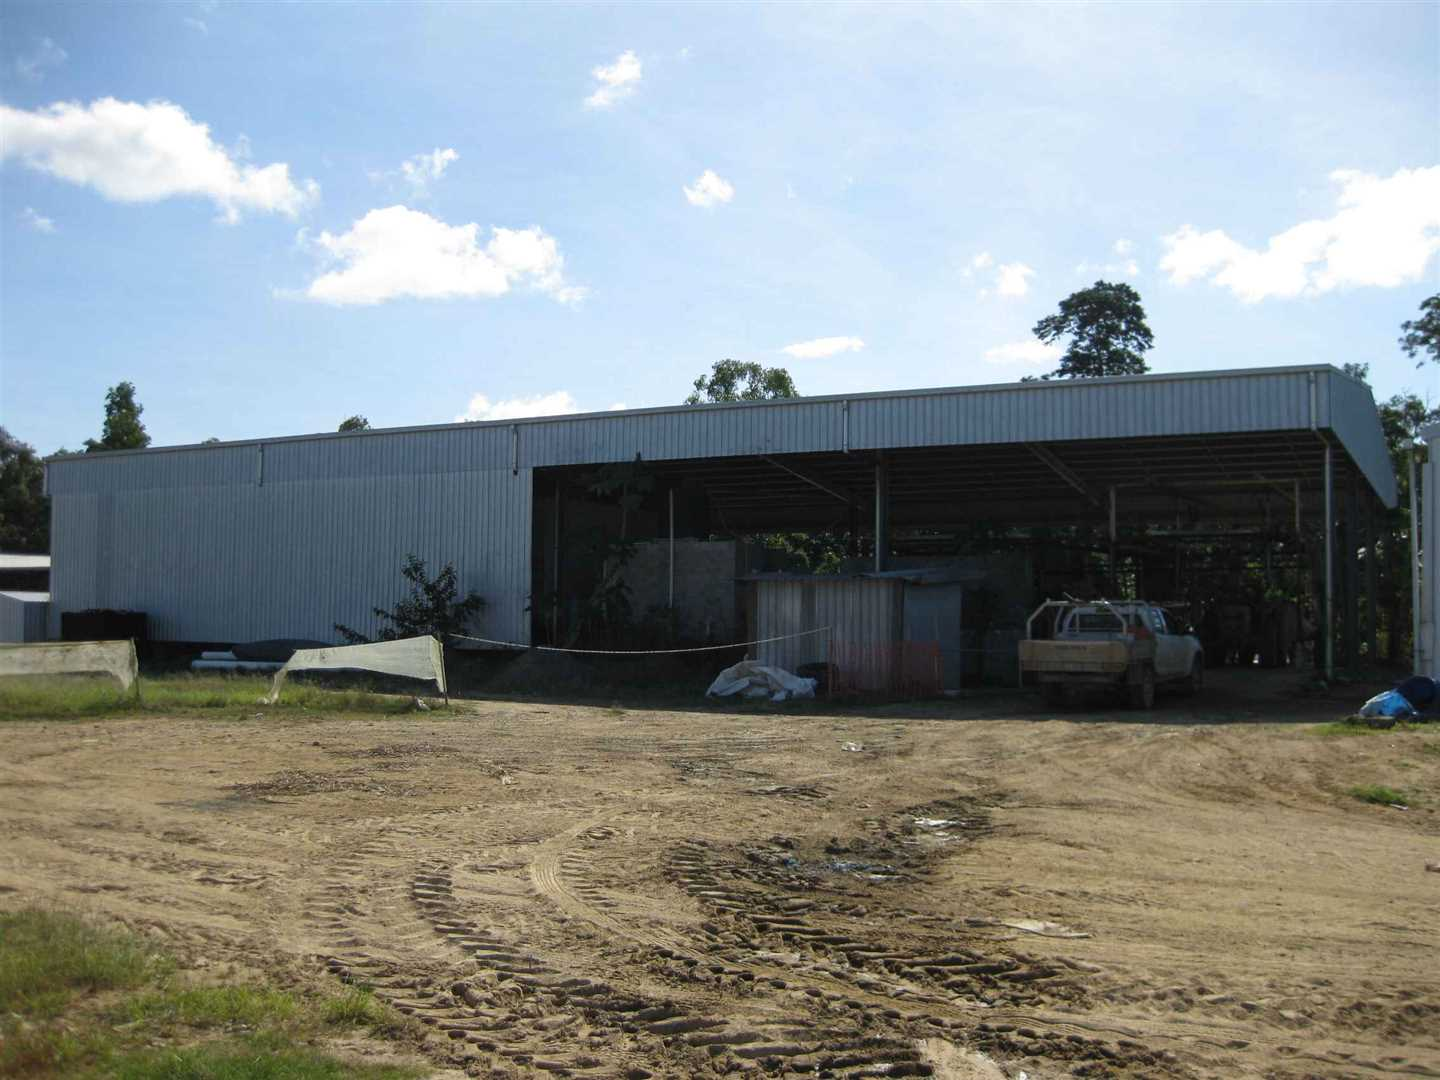 Outside view of part of packing shed, photo 1